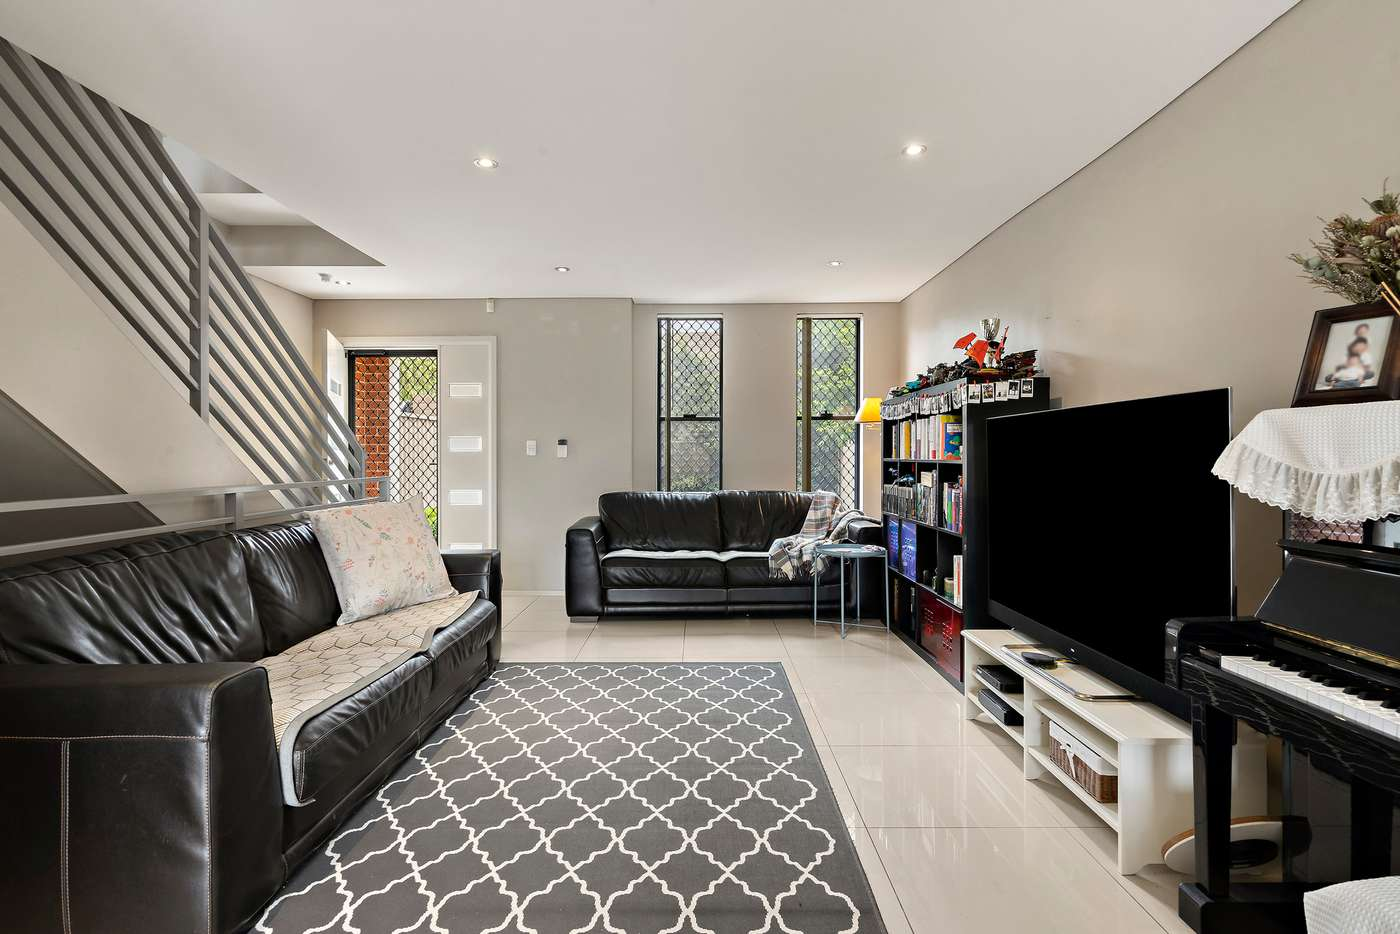 Main view of Homely townhouse listing, 6/96-100 Gladstone Street, North Parramatta NSW 2151